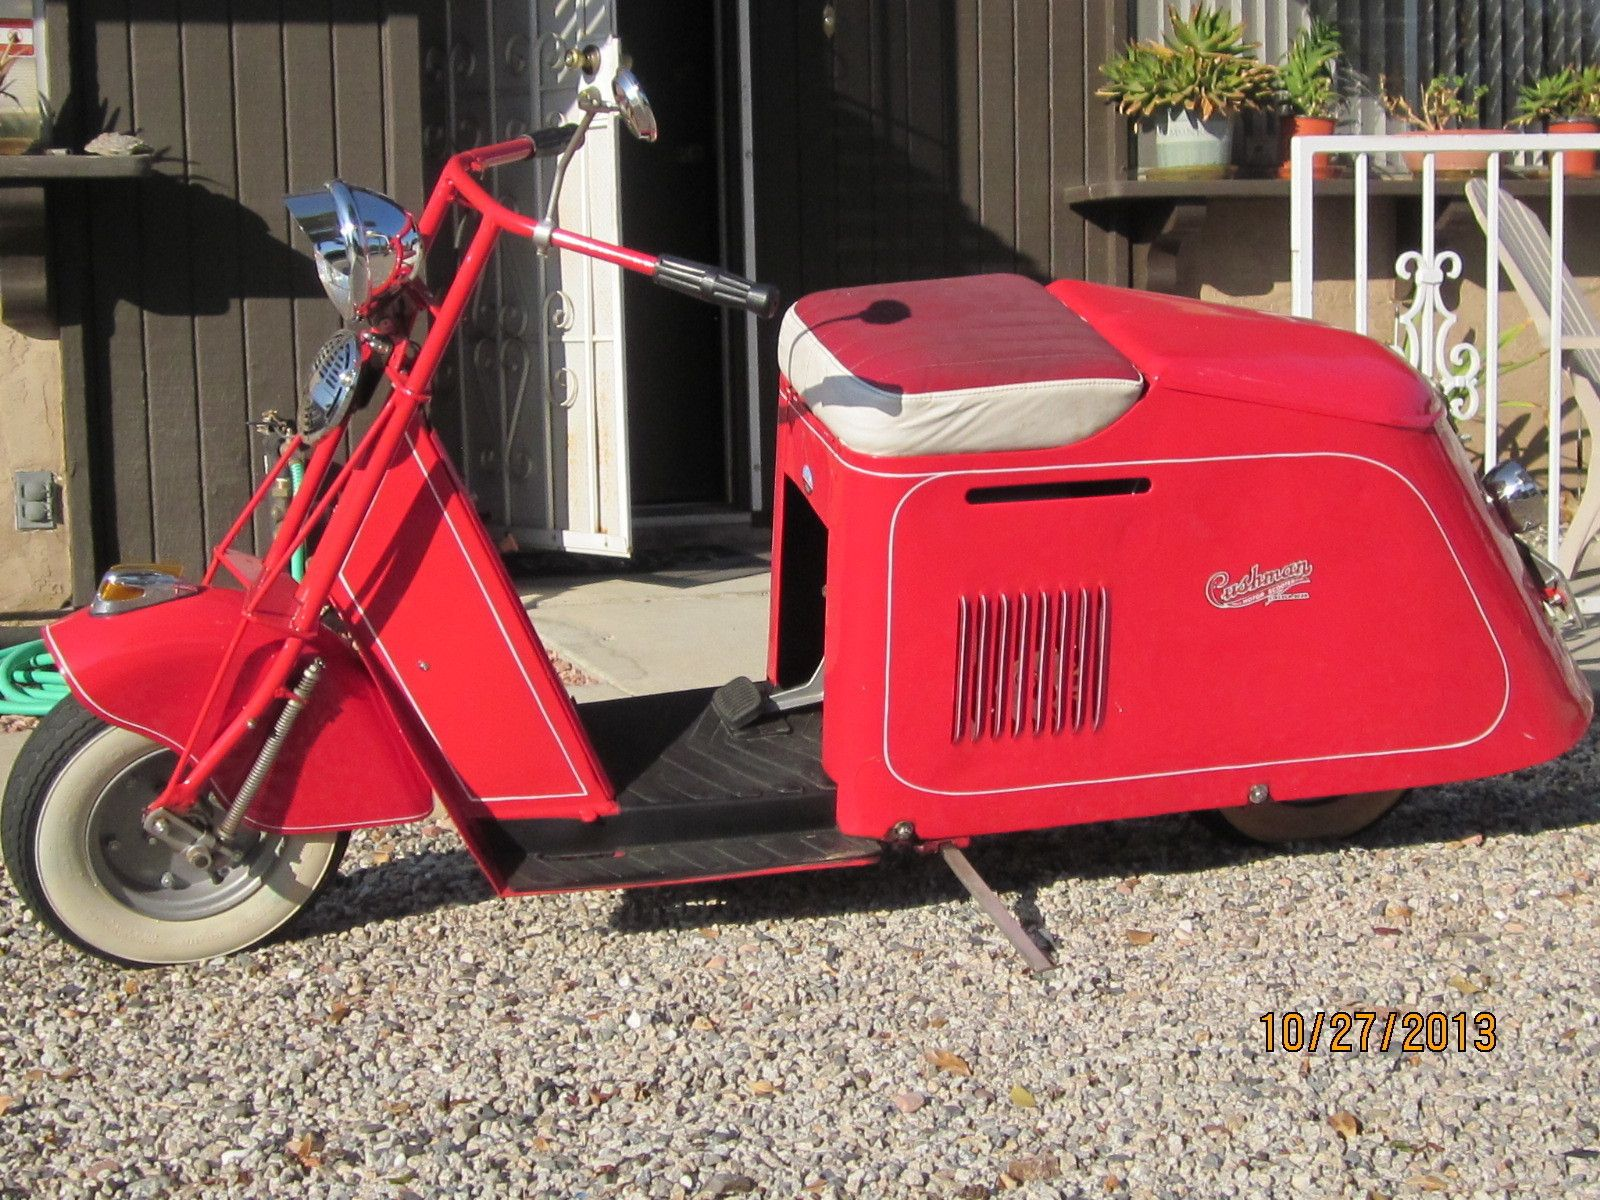 Details About 1946 Cushman Motor Scooter Step Through Just Scoots